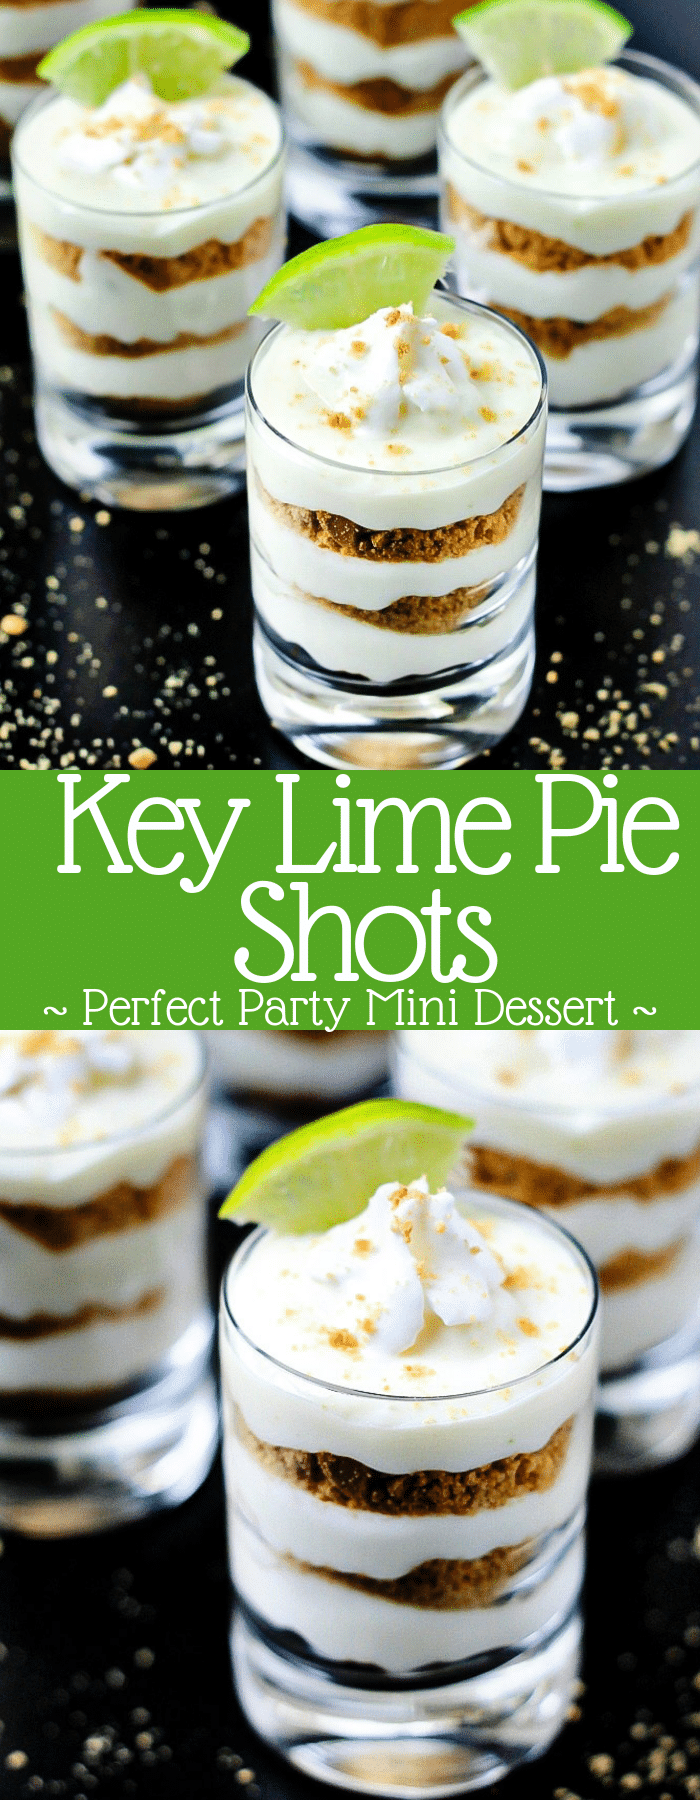 Everyone's favorite key lime pie turned into a mini dessert! Layer traditional pie fillings in shooter glasses for key lime pie shots; the perfect party dessert!